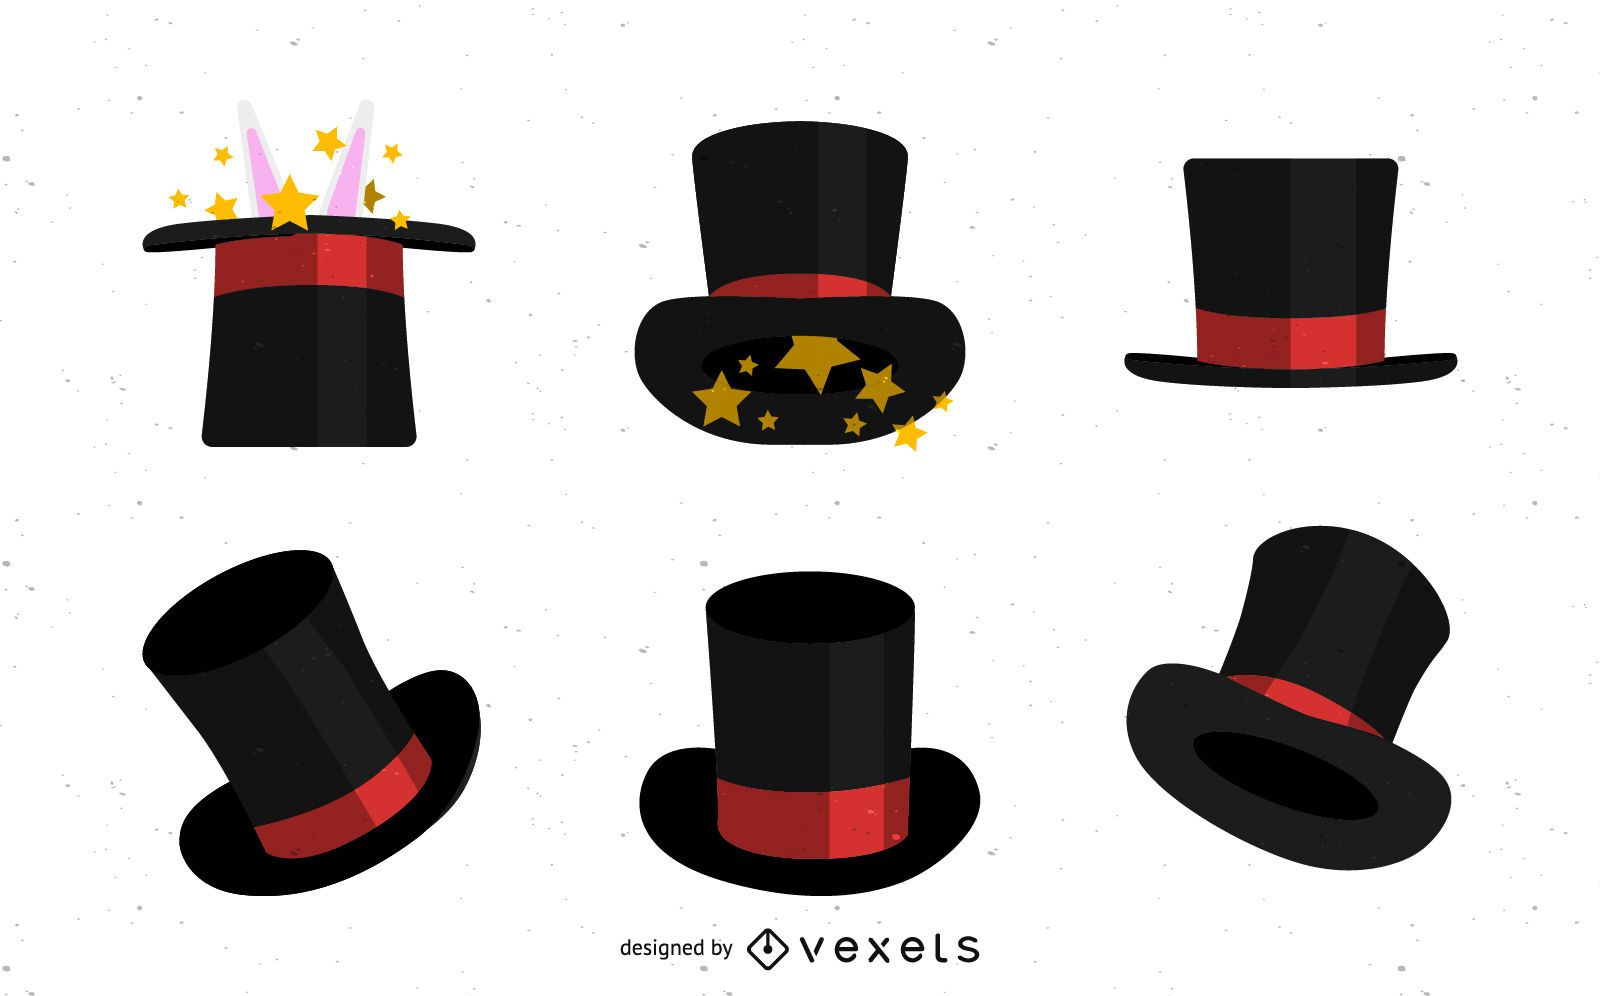 5e02f4ecd00841 Magician top hats set. Download Large Image 1600x996px. license image; user